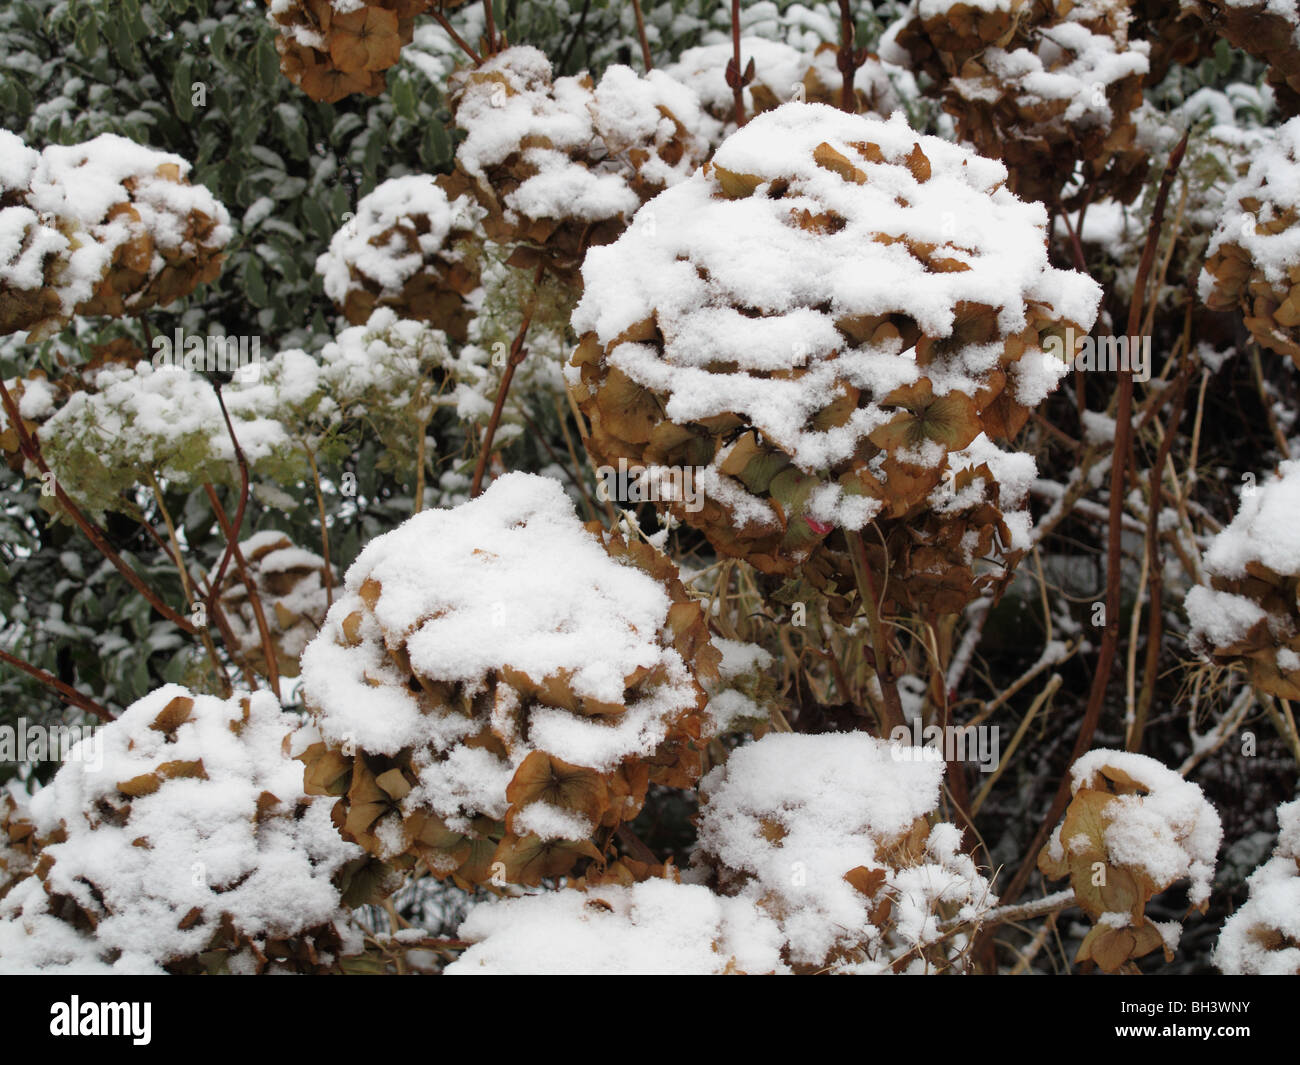 Snow cover on last years flowers on a hydrangea in mid winter - Stock Image